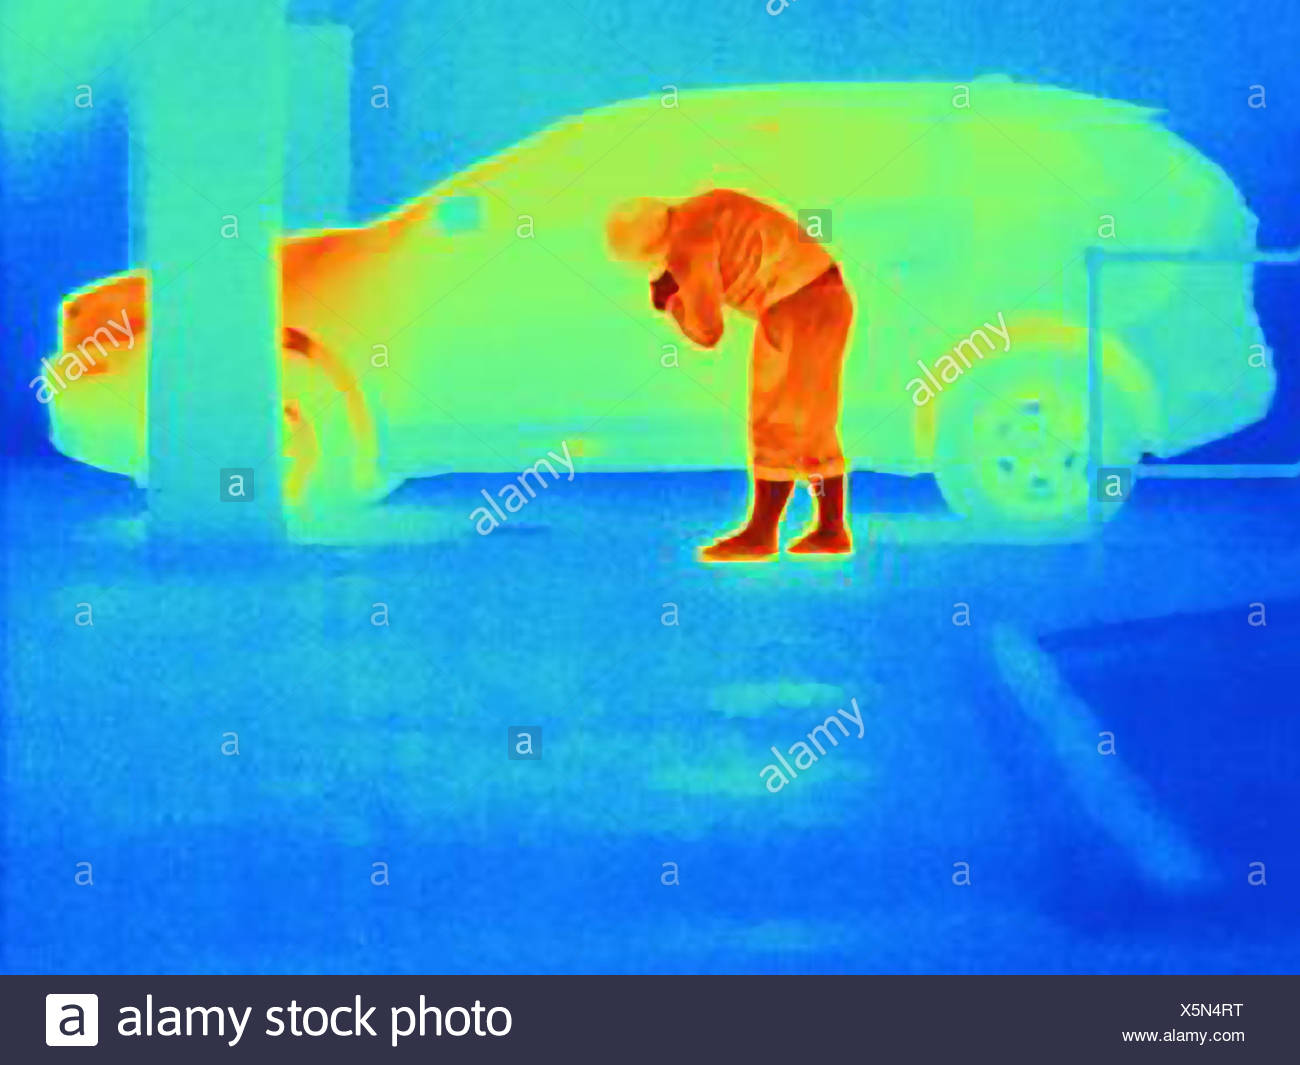 Thermal photograph of a burglar breaking into a car - Stock Image